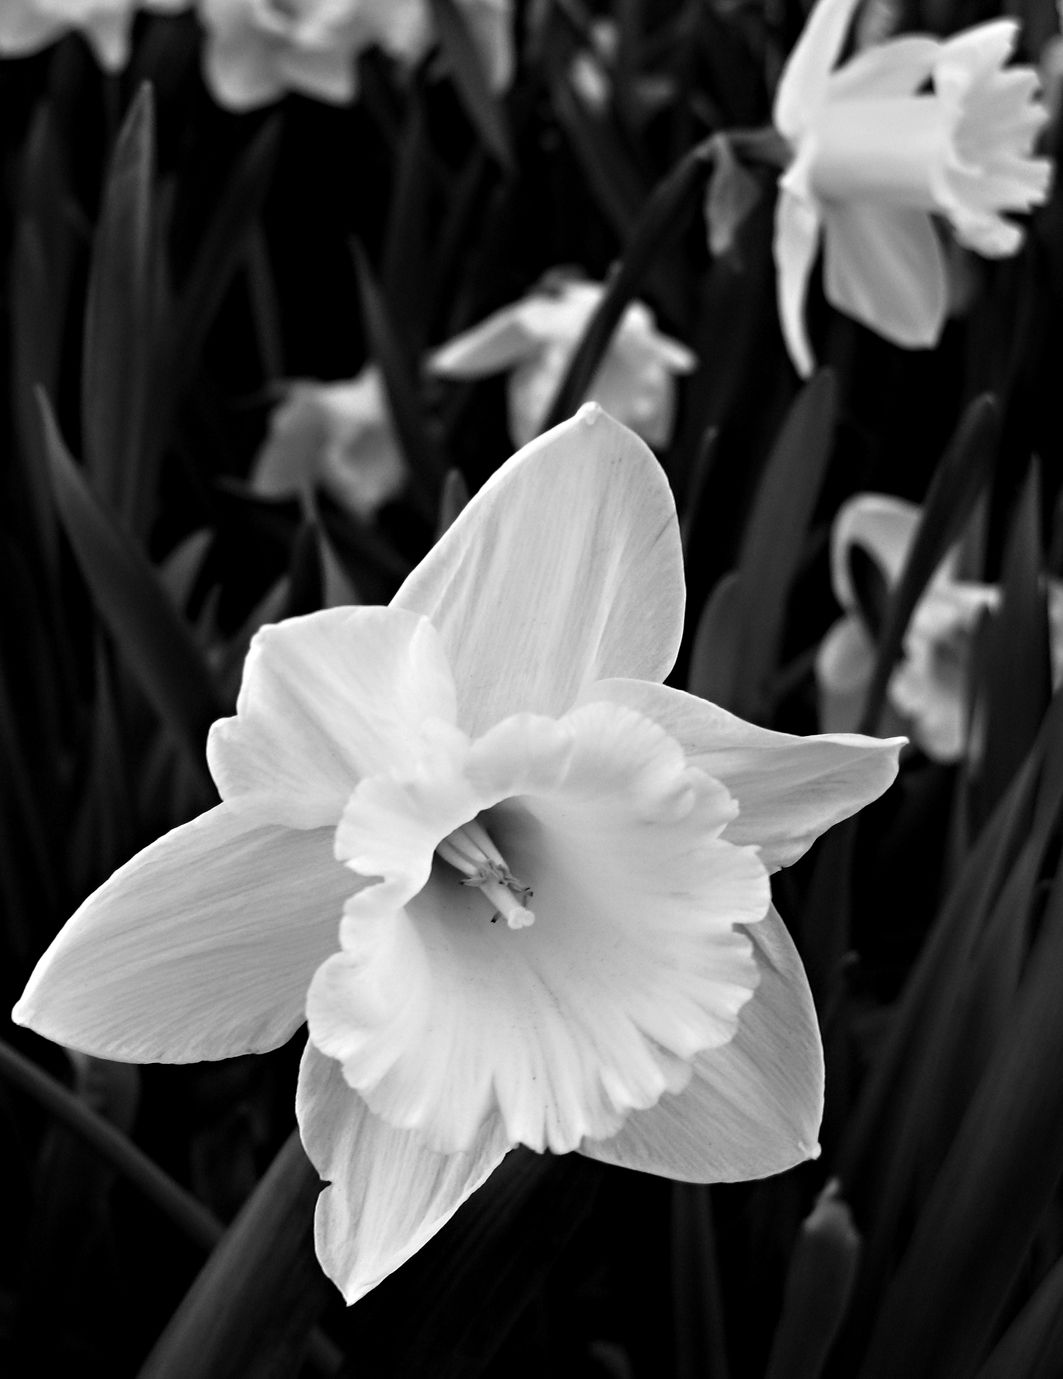 December Birth Flower Tattoo Black And White: Narcissus - December Birth Flower